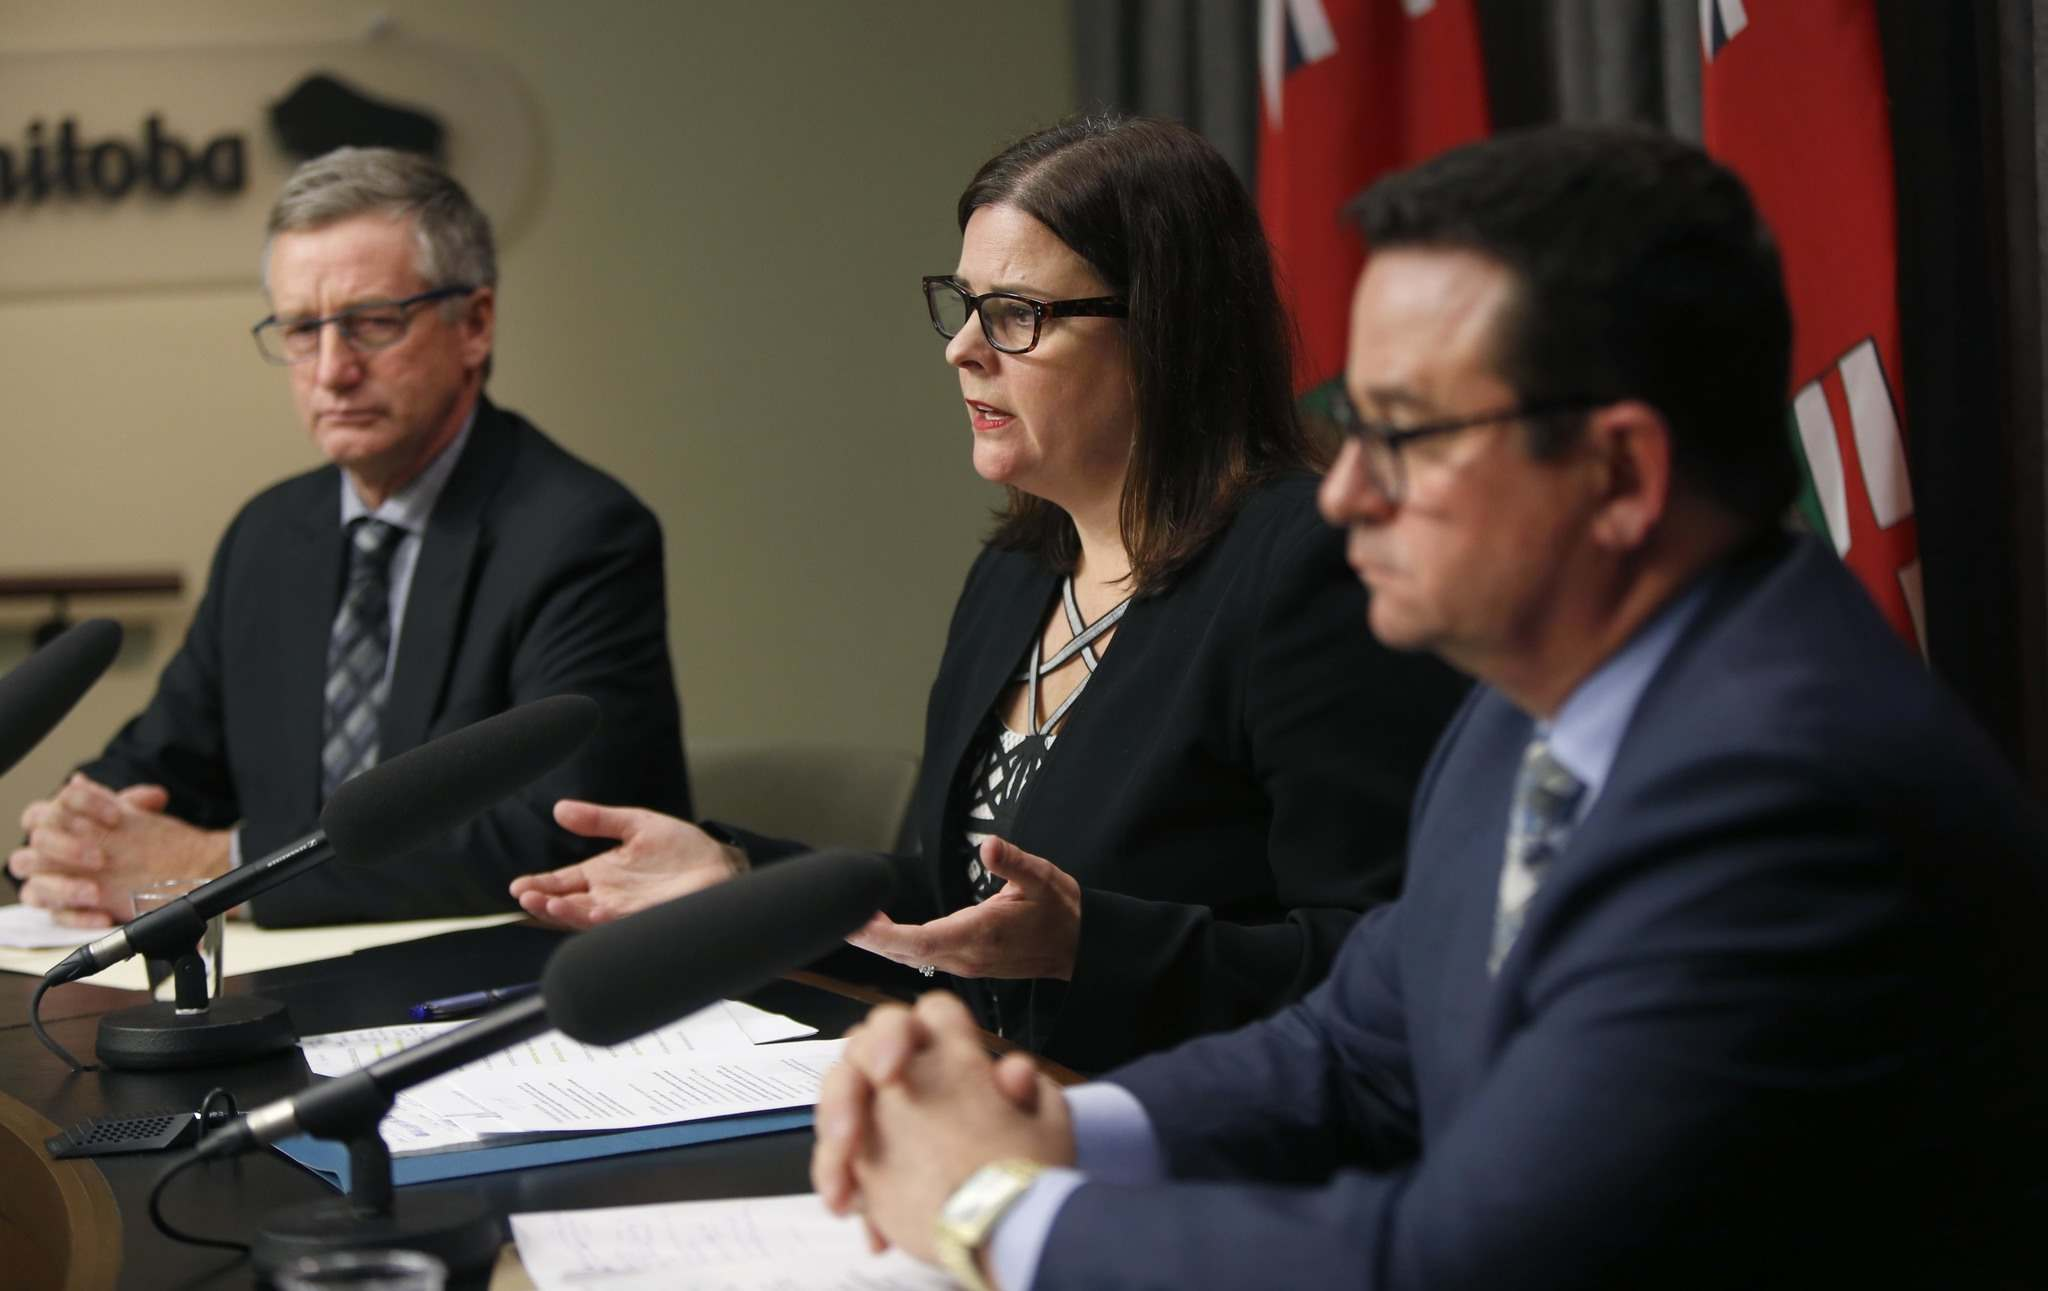 WAYNE GLOWACKI / WINNIPEG FREE PRESS</p><p>Justice Minister Heather Stefanson with at left, Blaine Pedersen, Growth, Enterprise and Trade Minister and Jeff Wharton, Municipal Relations Minister at the news conference in the Manitoba Legislative building Tuesday.</p>